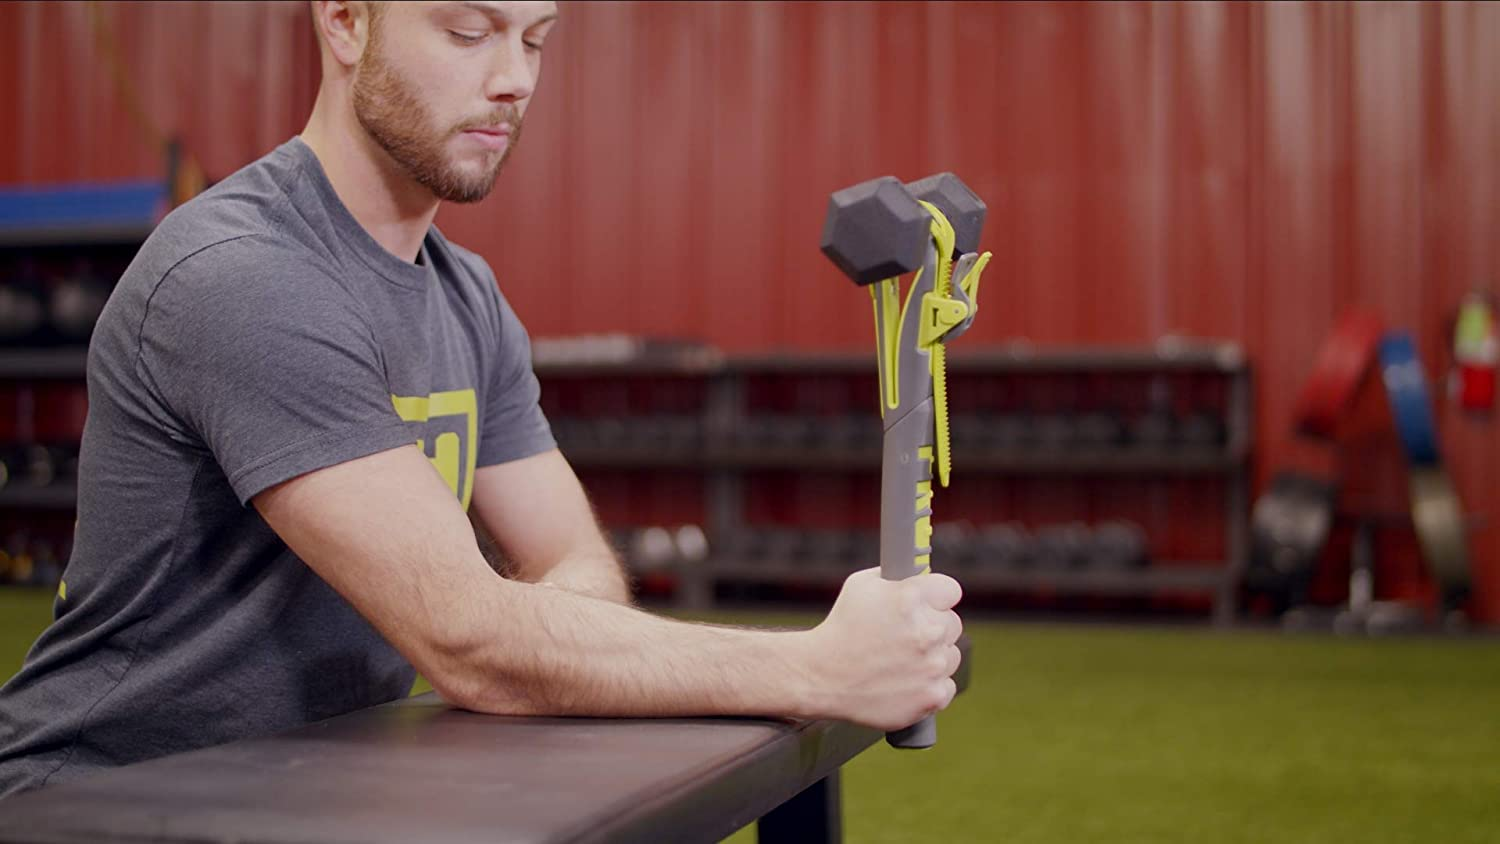 Green and Grey PRONATOR Build Arm Strength Using Any Dumbbell